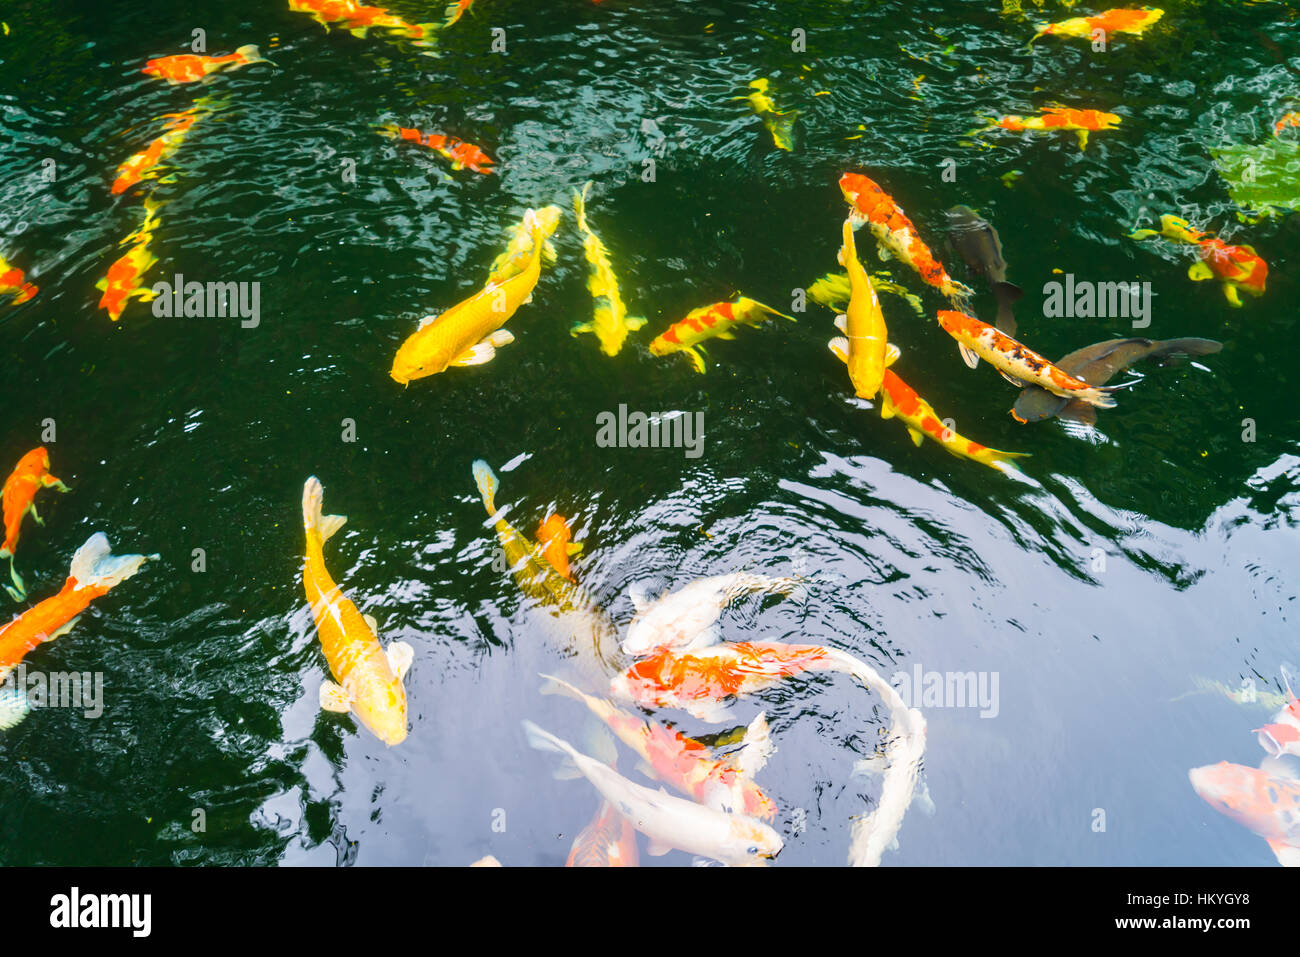 Colorful Koi fish swimming in water Stock Photo: 132757052 - Alamy